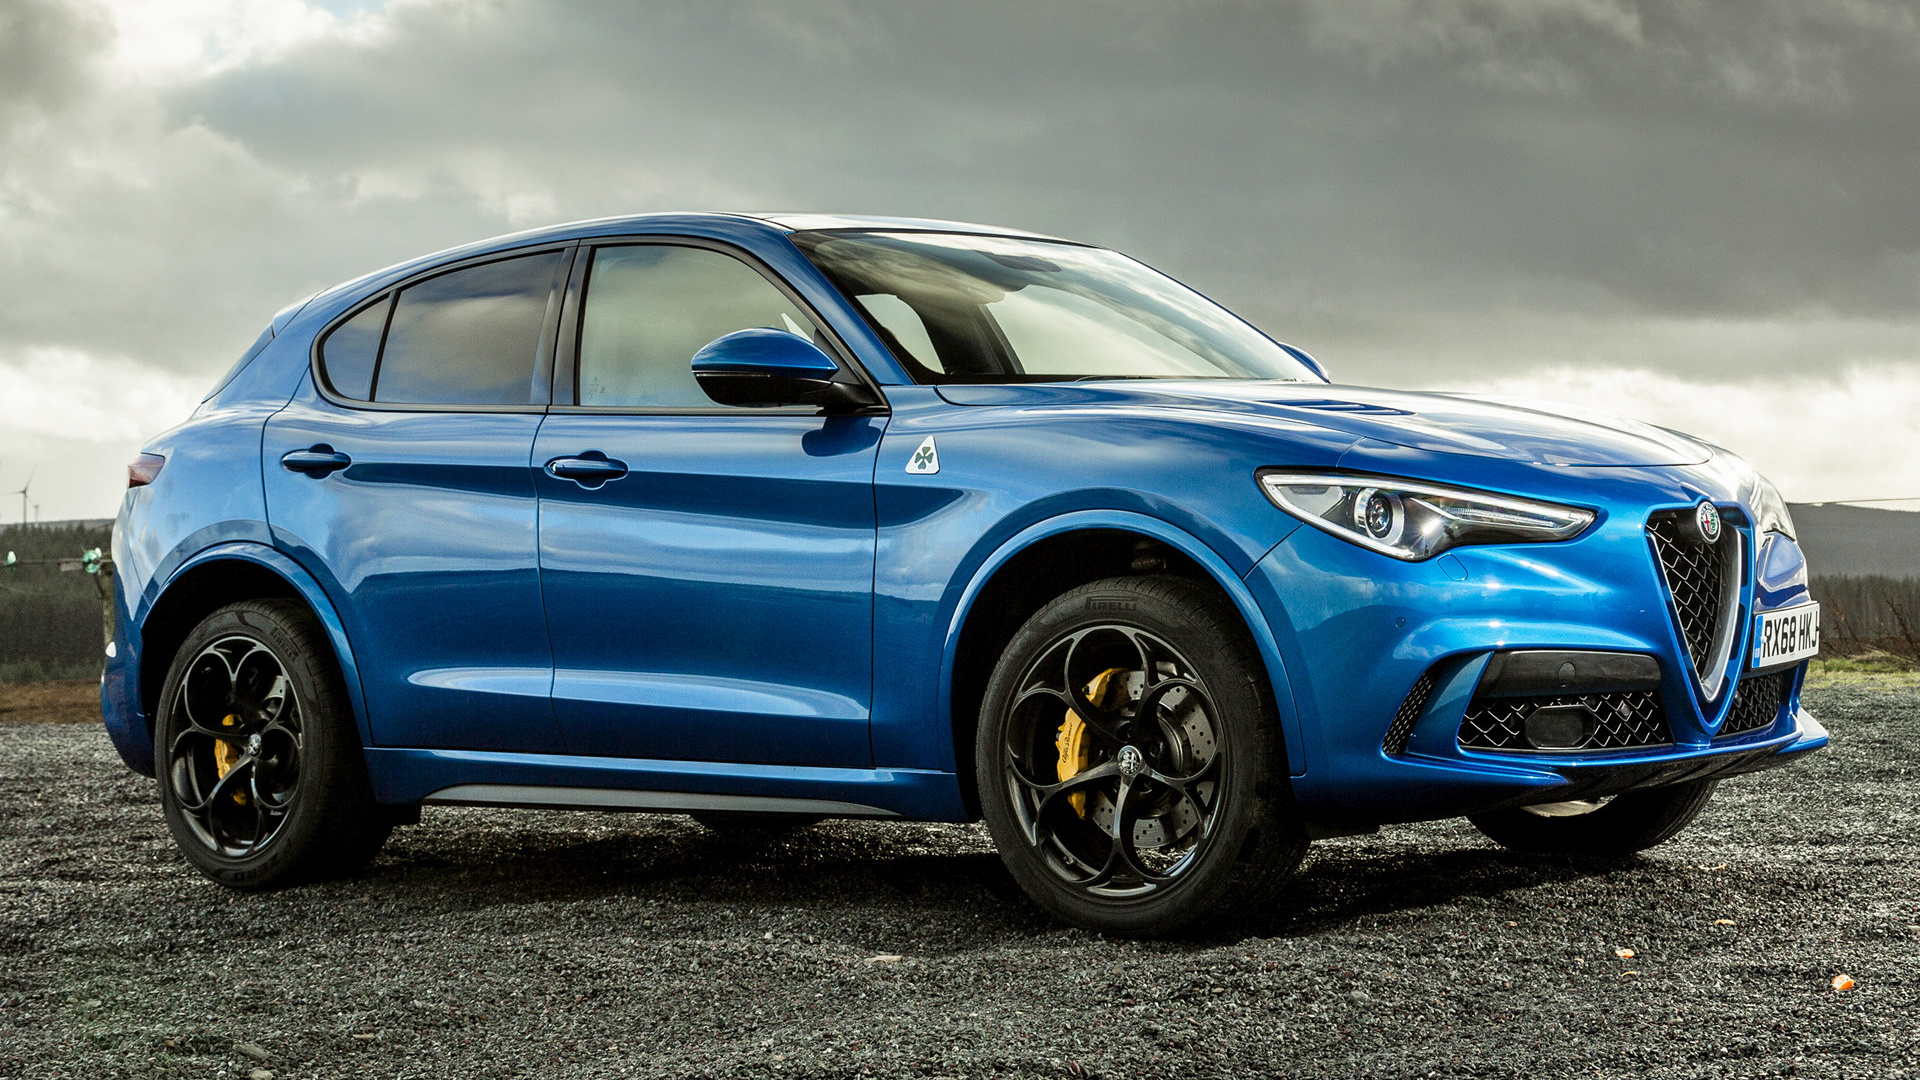 Alfa Romeo Stelvio Quadrifoglio Wallpaper Hd on Alfa Romeo Stelvio